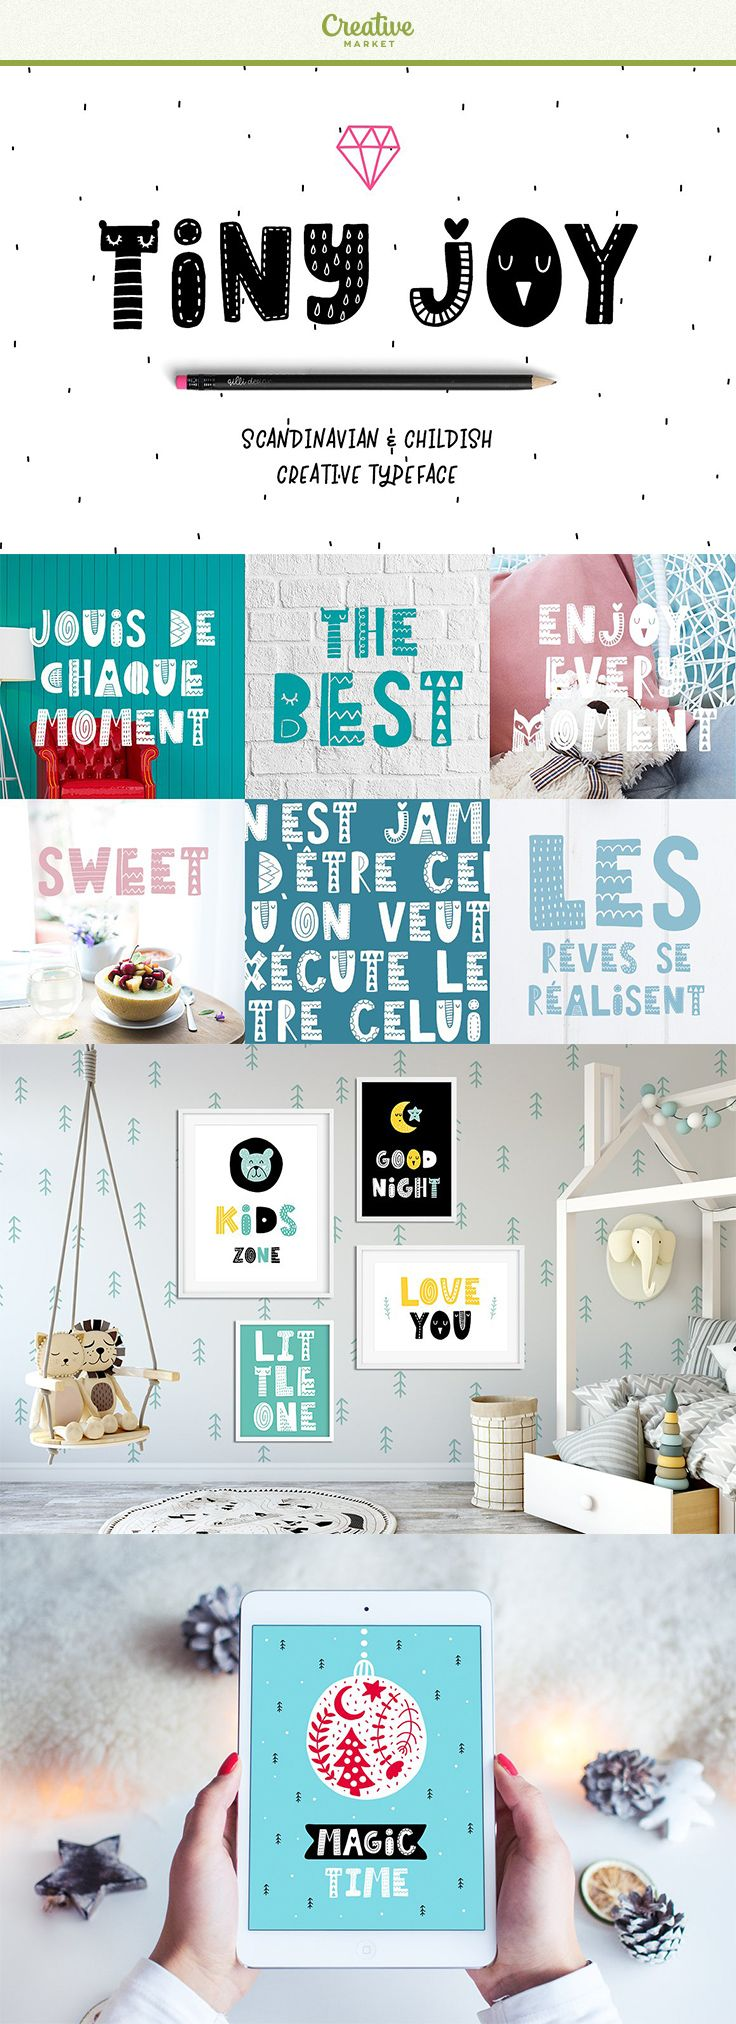 Tiny Joy Font - Scandinavian & Kids typeface! Font for your funny projects! ♥️This script is perfect for cards, prints, logos, invitations, arrange illustration and decoration. It has upper and lower case letters, numbers, special characters, accents. Perfect for Children! #affiliate